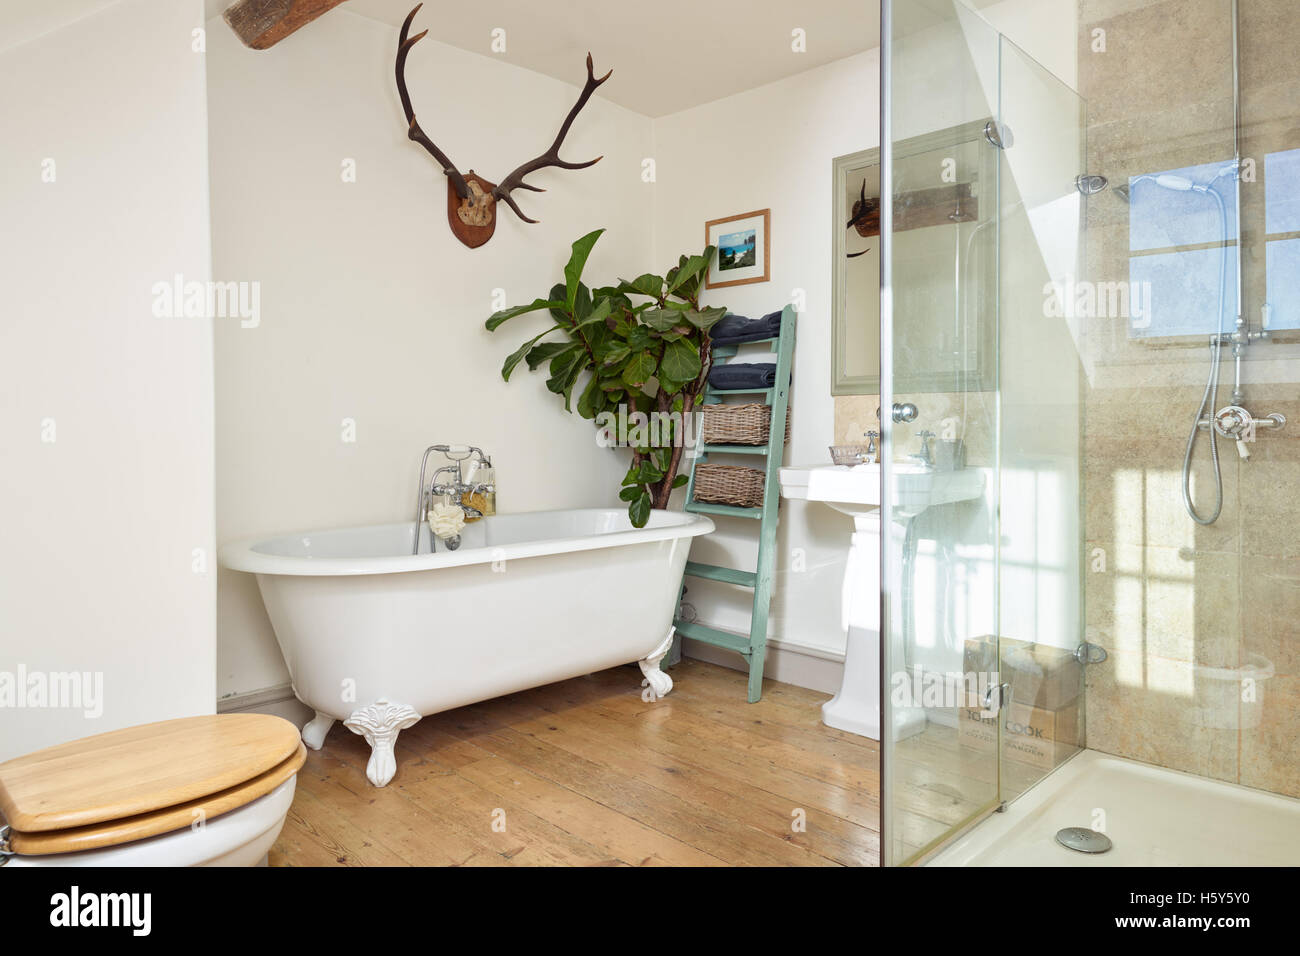 A modernised bathroom in a Victorian home, showing wood flooring, a freestanding bath & walk in shower - Stock Image